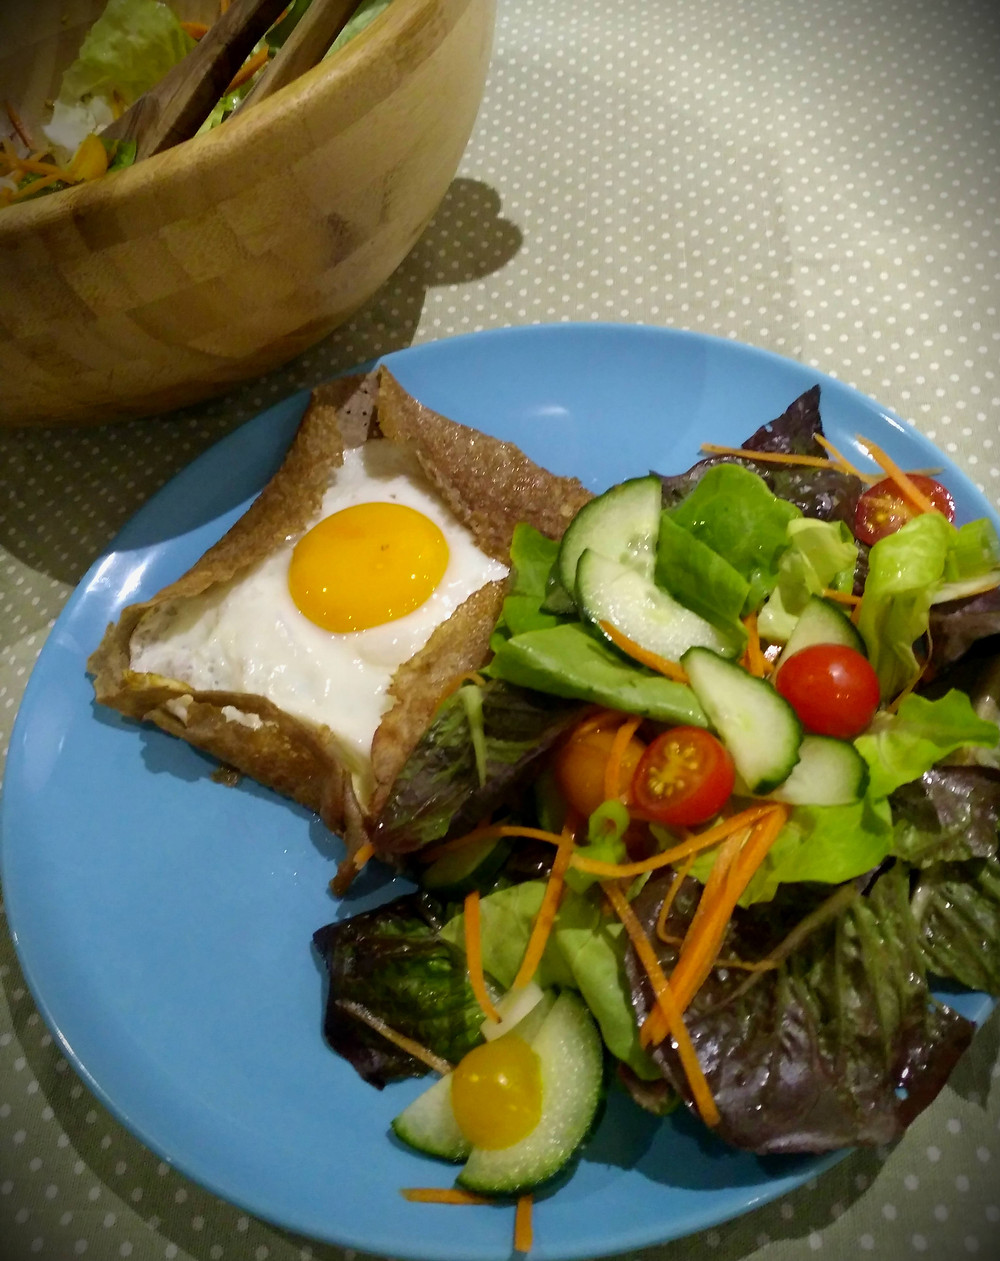 A picture of my galette complète, with salad on the side.